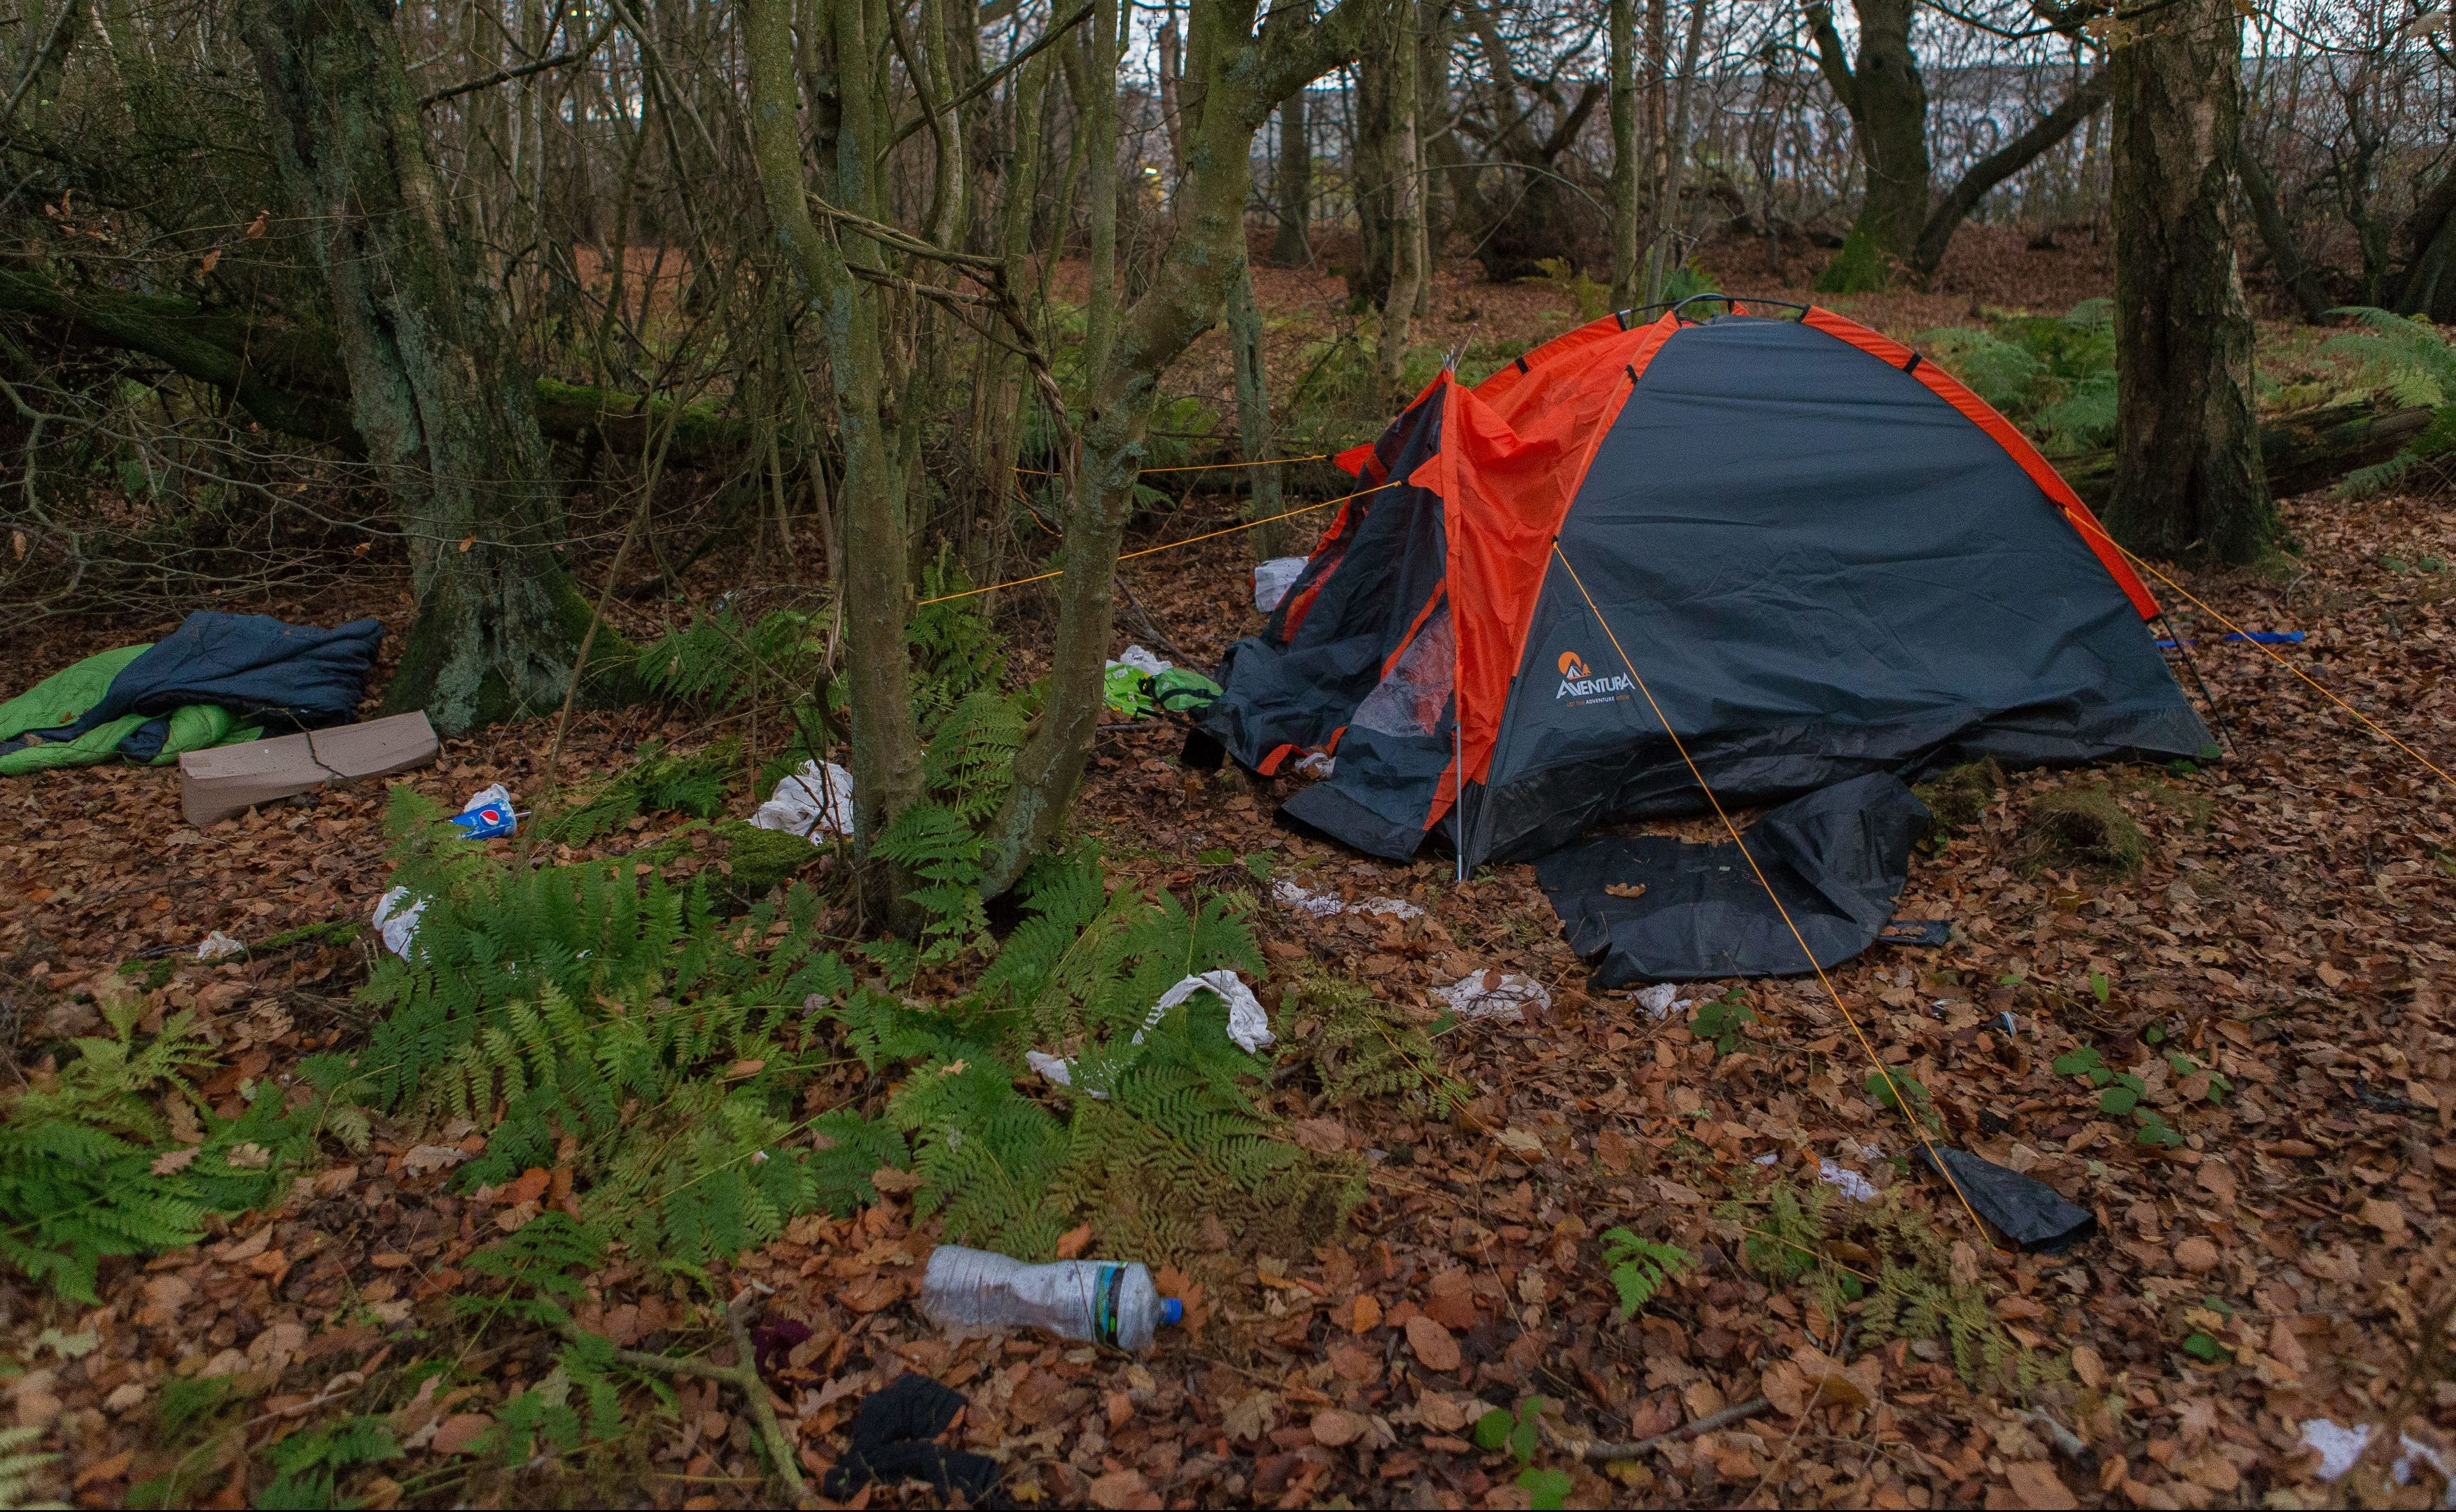 One tent near the Amazon site in Dunfermline. Two others have been seen in recent days.